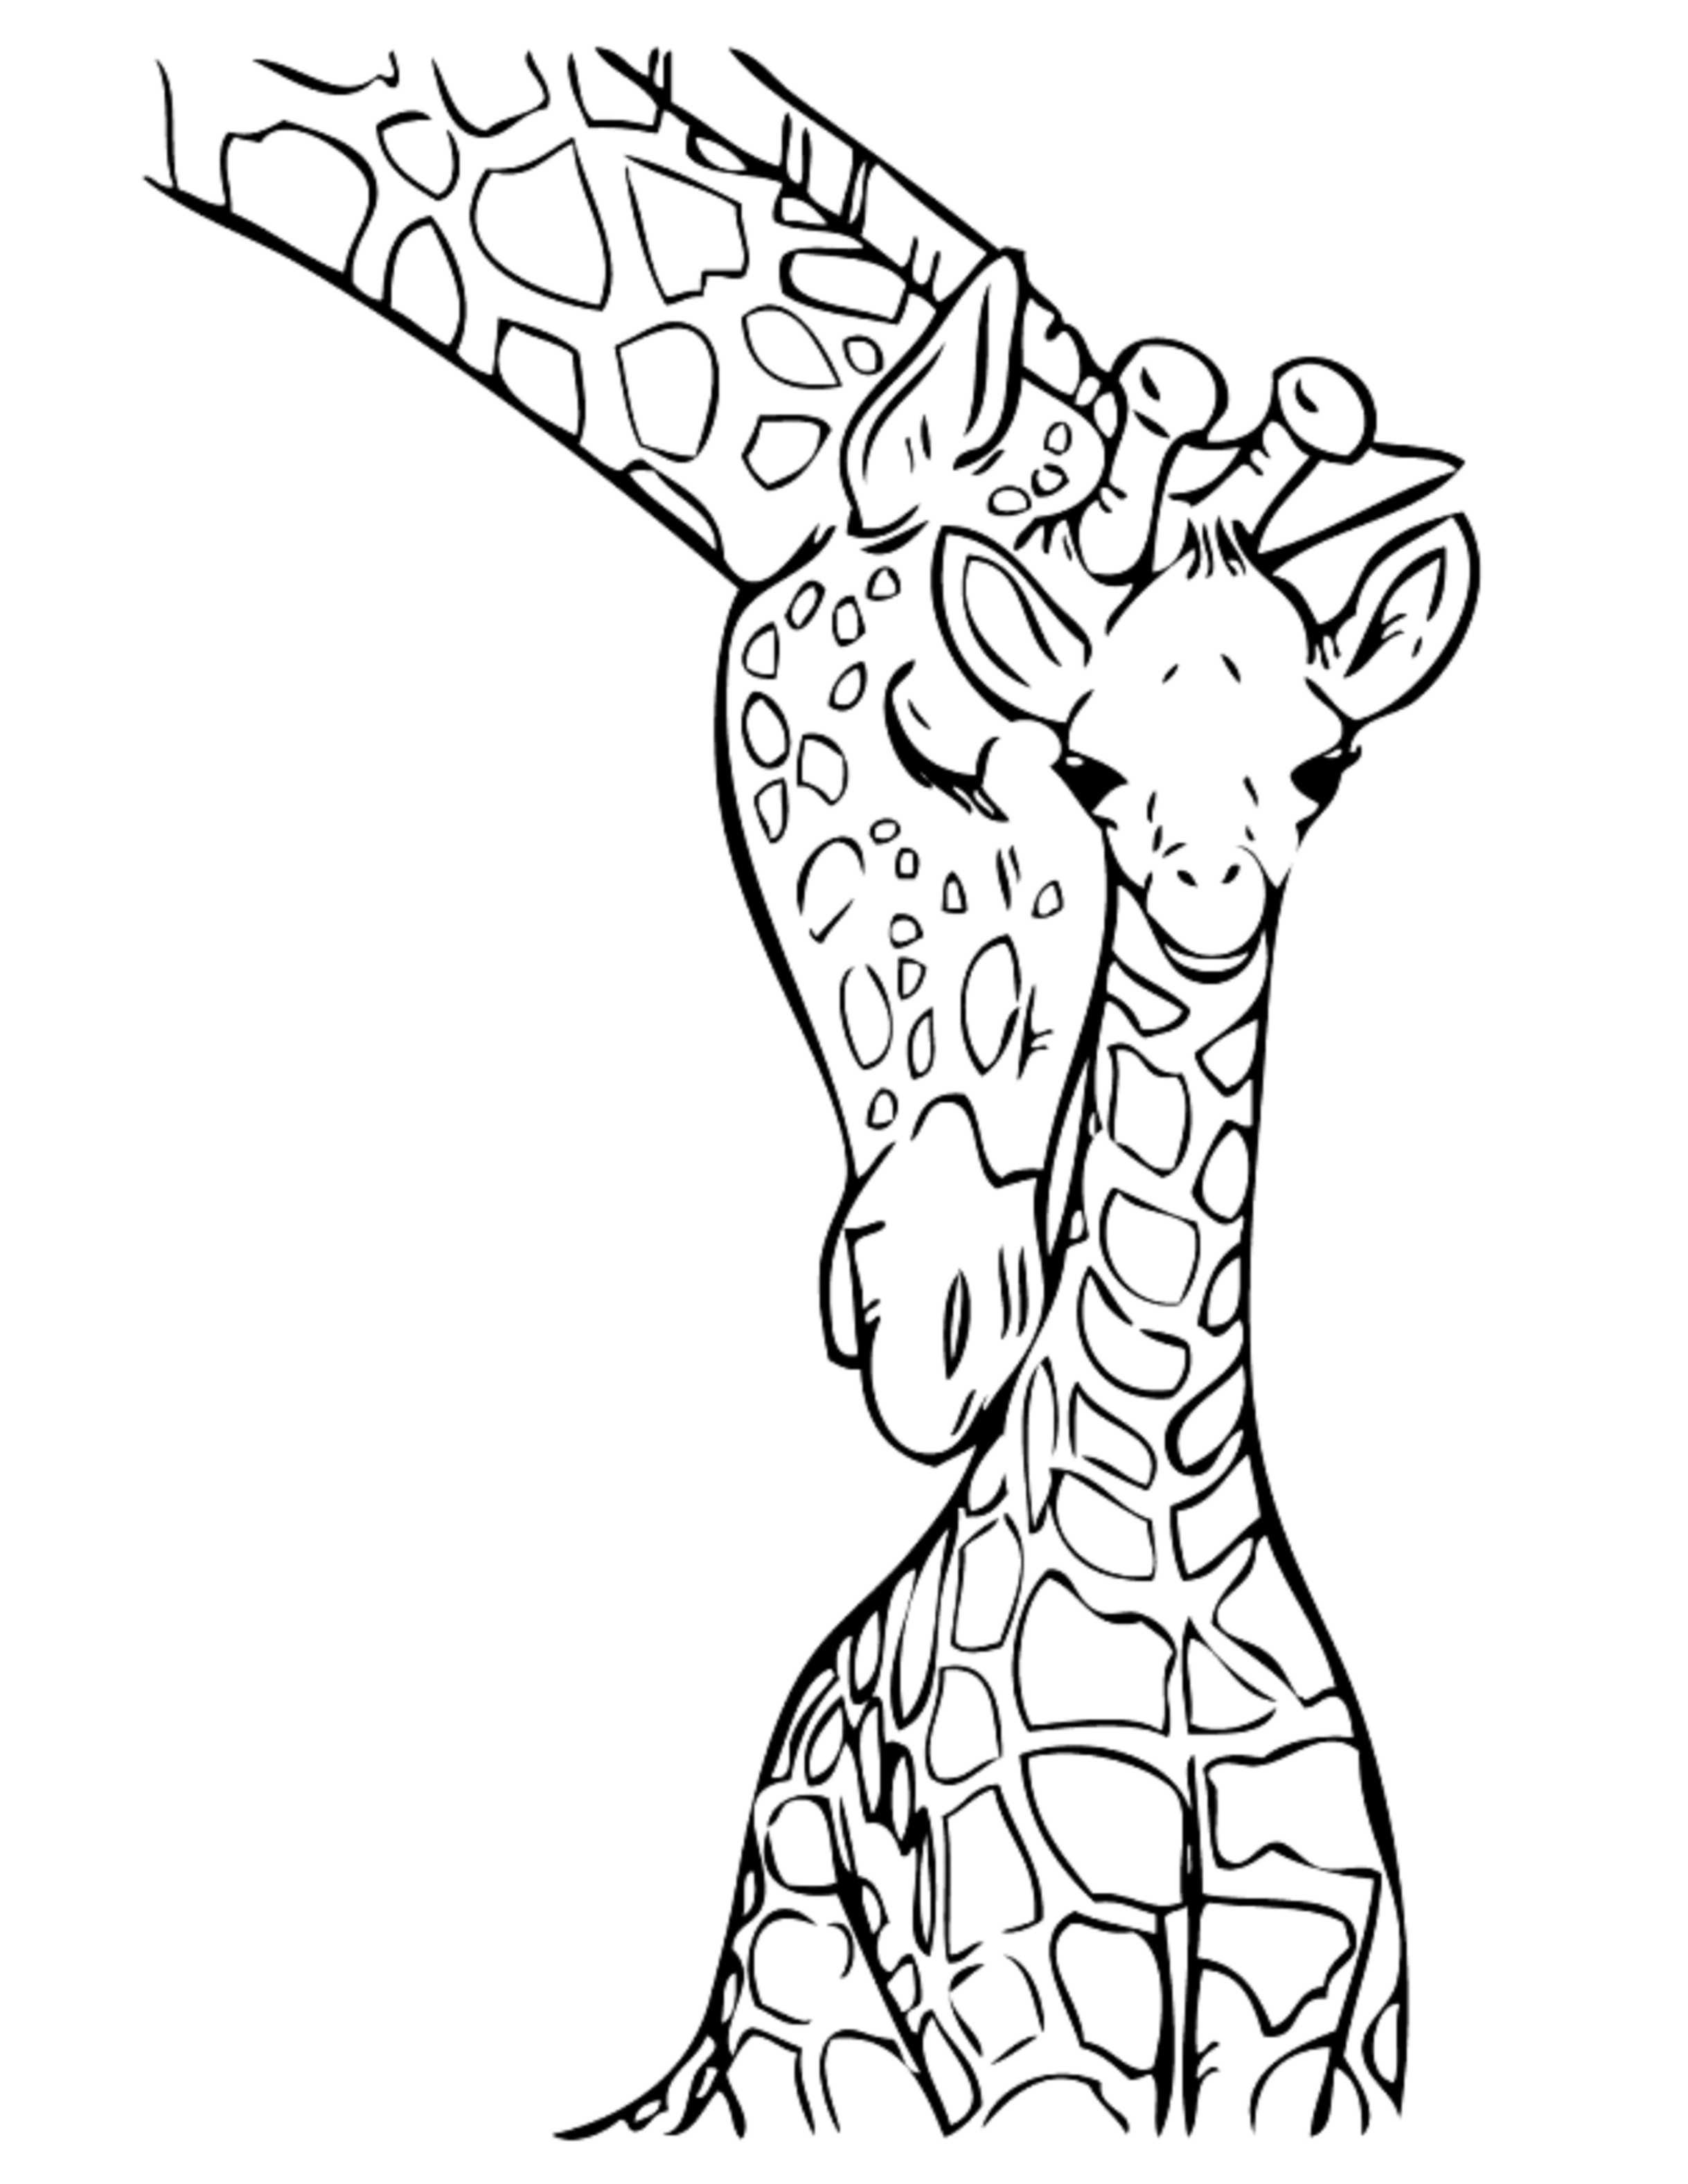 Giraffe Coloring Pages Printable Zebra Coloring Pages Animal